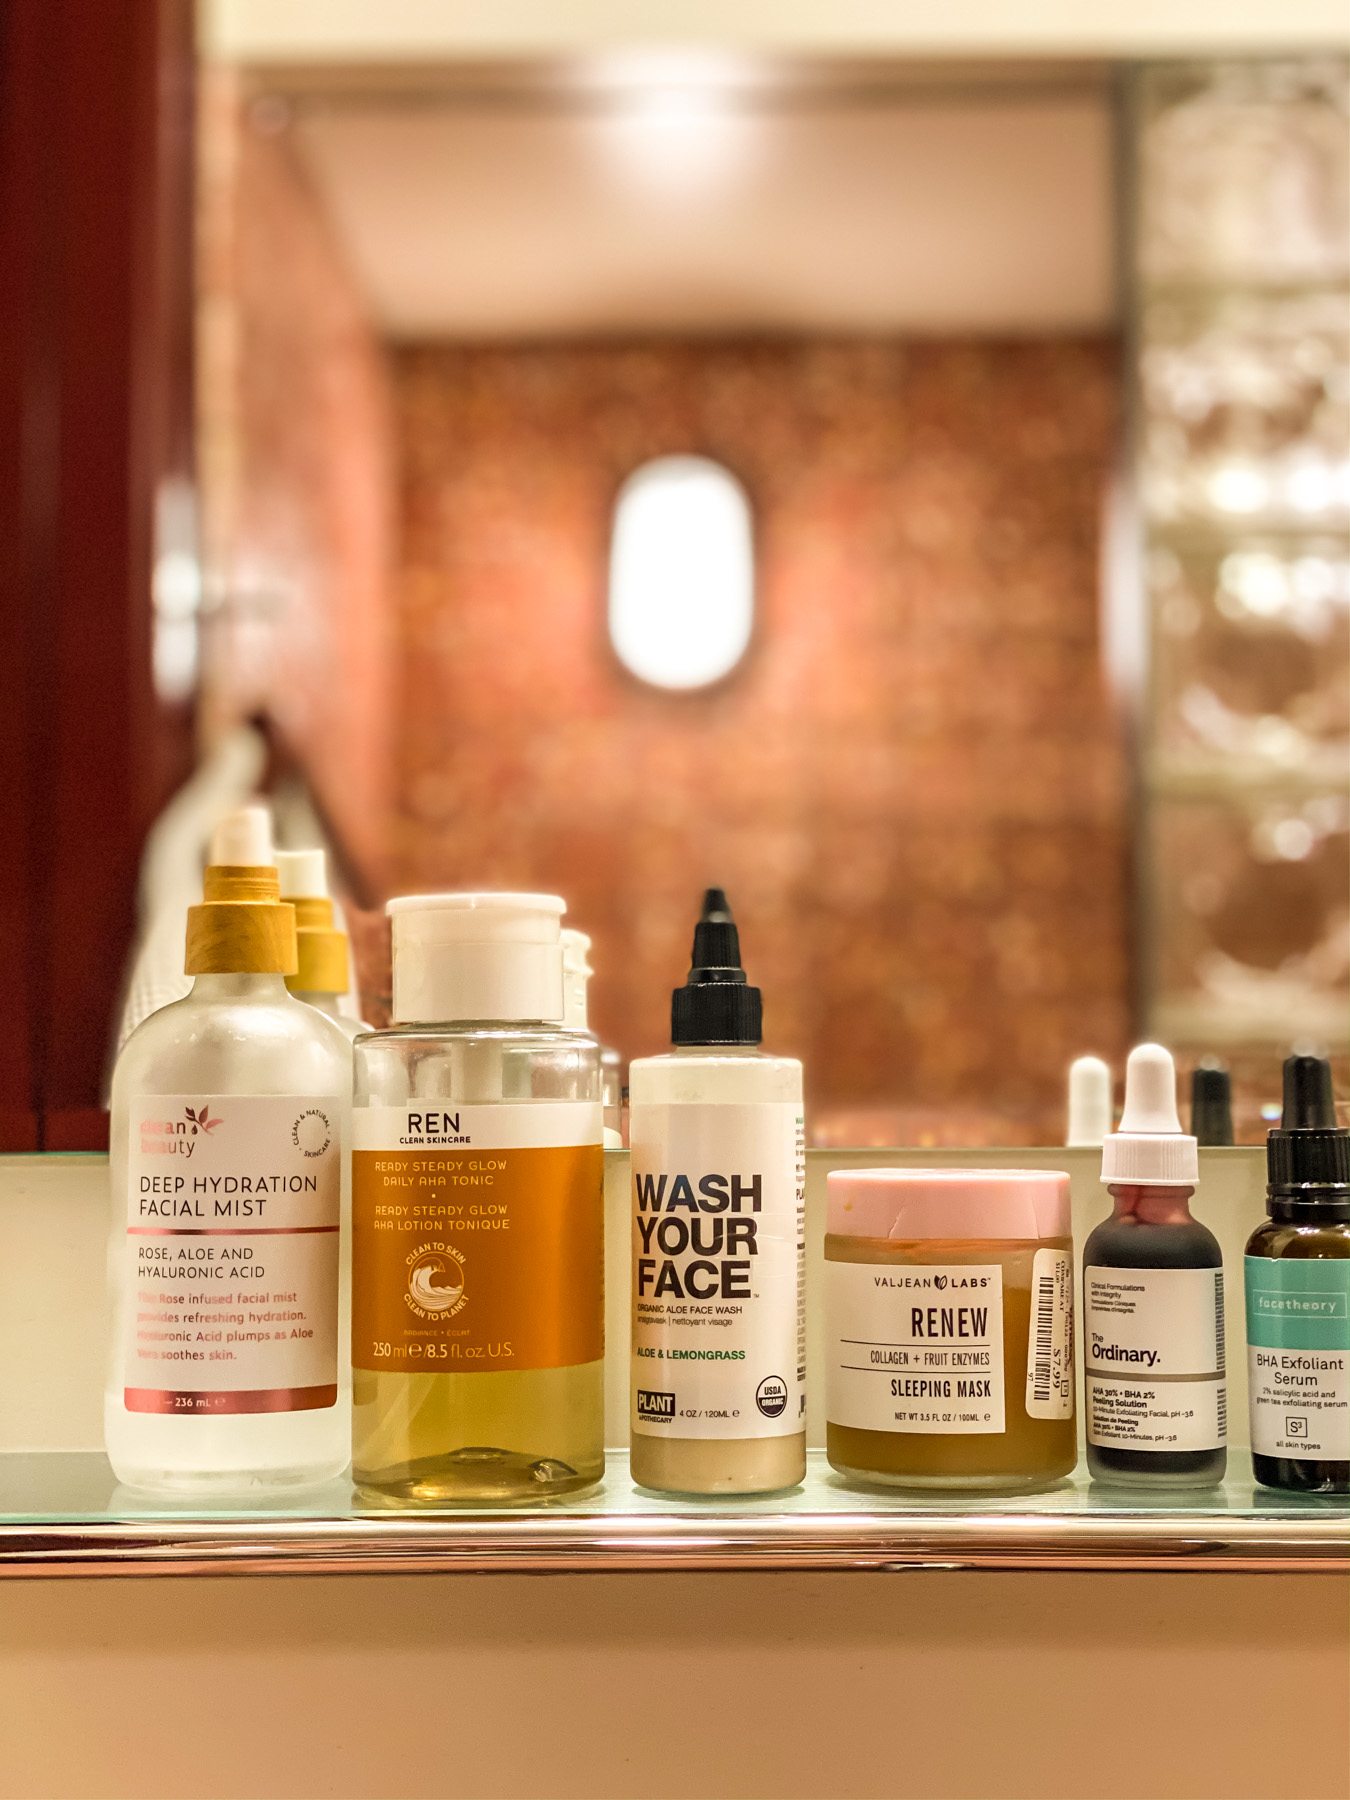 skin care routine to prevent acnes, affordable skin care, natural skin care products, skin care products to fade dark spots